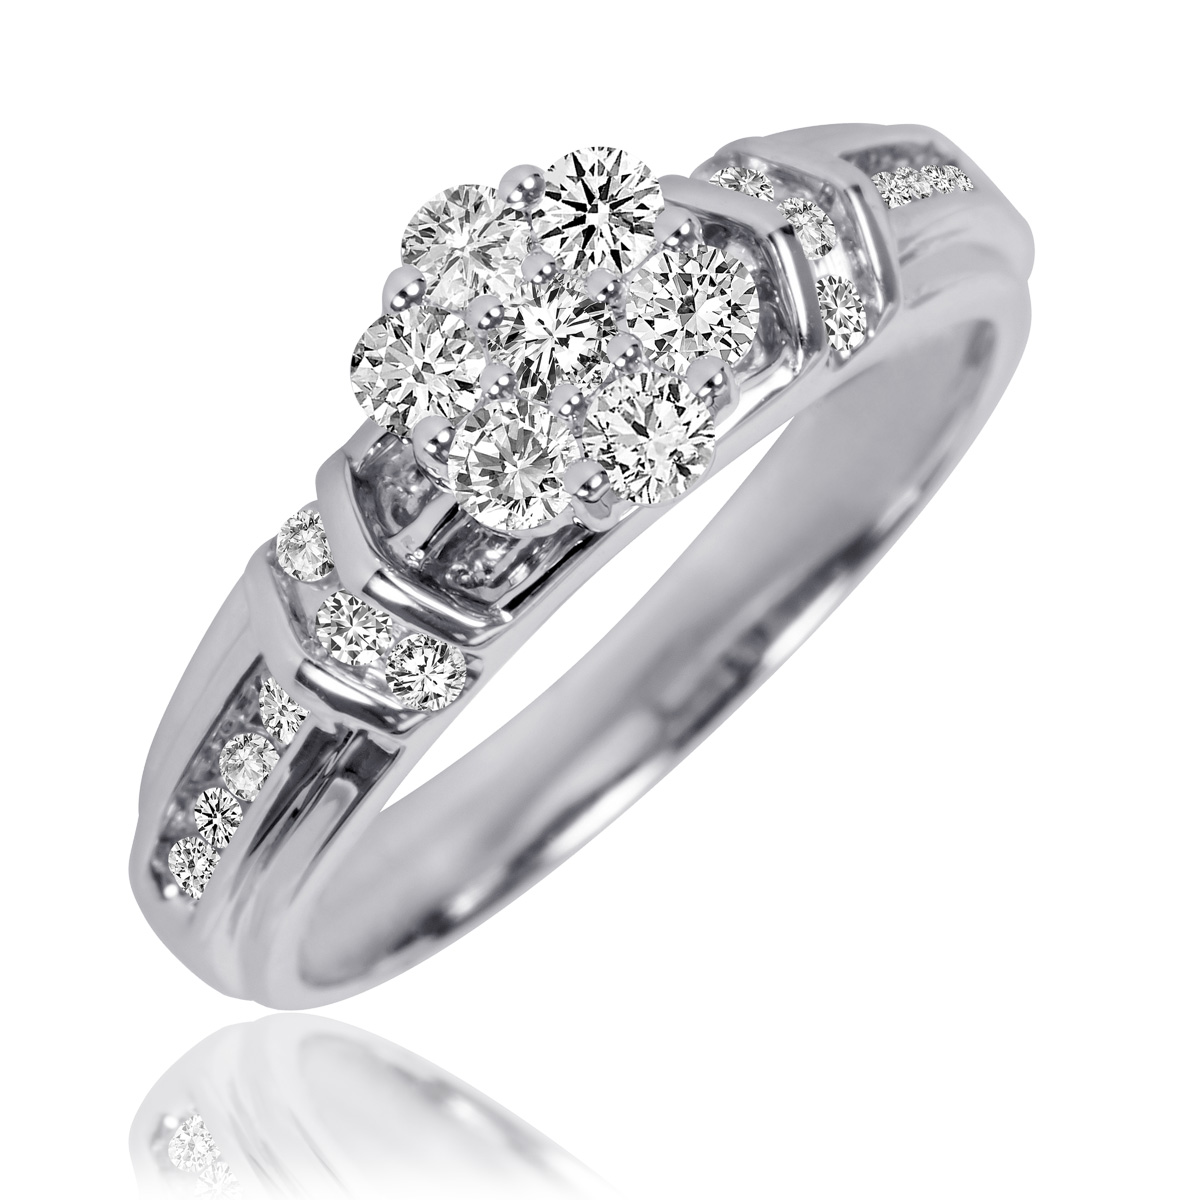 1 1 10 carat t w diamond trio matching wedding ring set. Black Bedroom Furniture Sets. Home Design Ideas